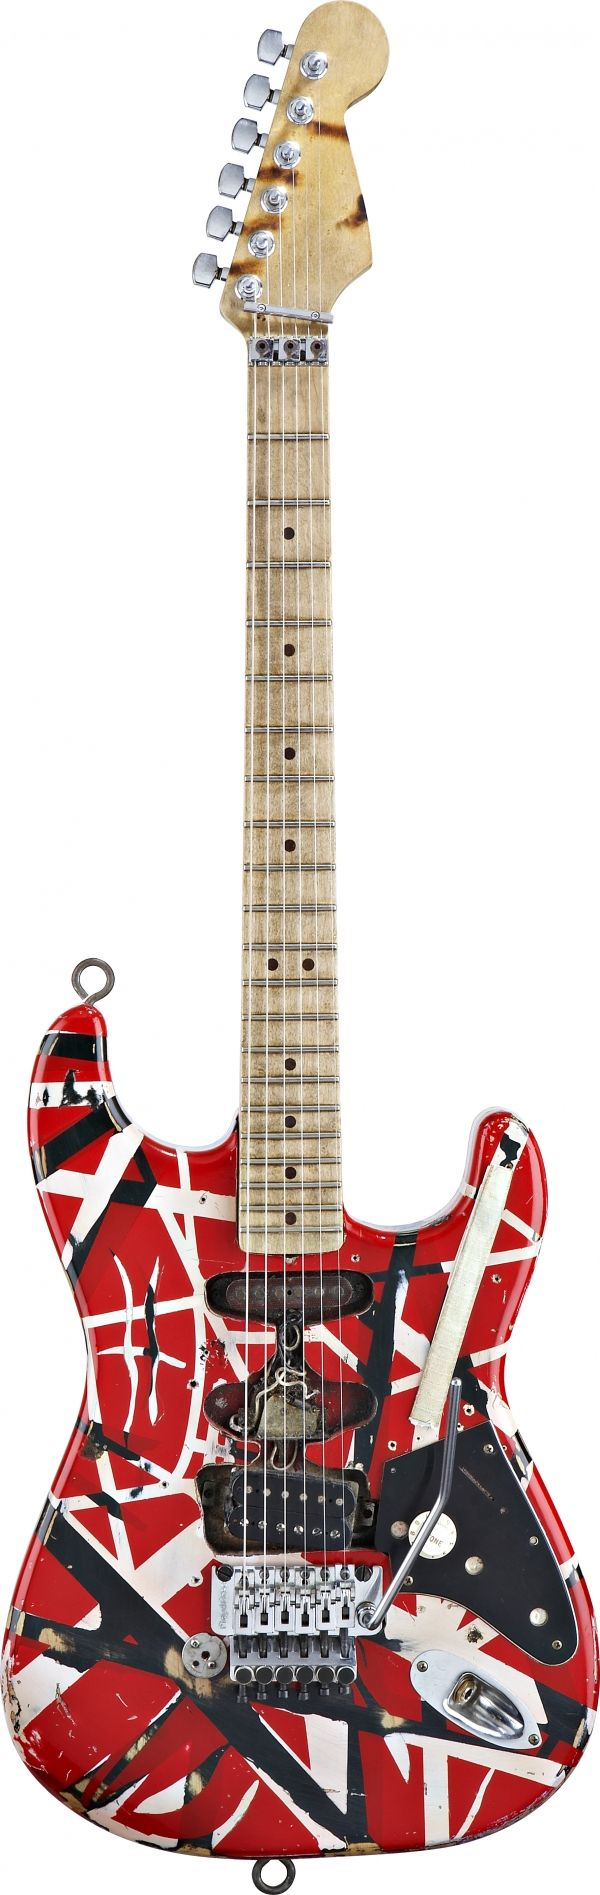 Pin By Ben Erickson On Things Of Beauty Music Guitar Eddie Van Halen Famous Guitars